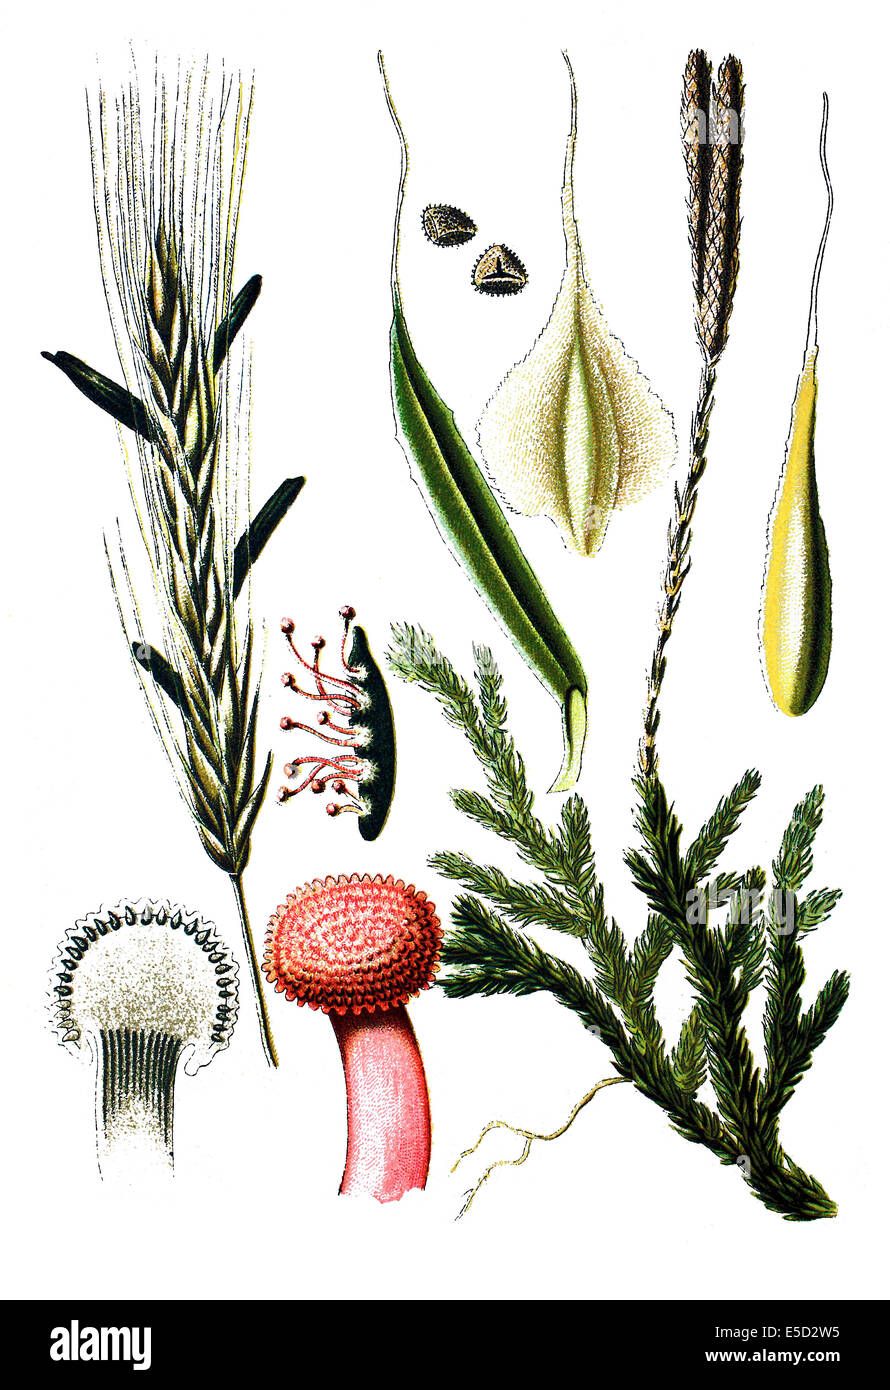 left: Claviceps purpures. rechtes: wolf's-foot clubmoss, stag's-horn clubmoss, or ground pine, Lycopodium - Stock Image